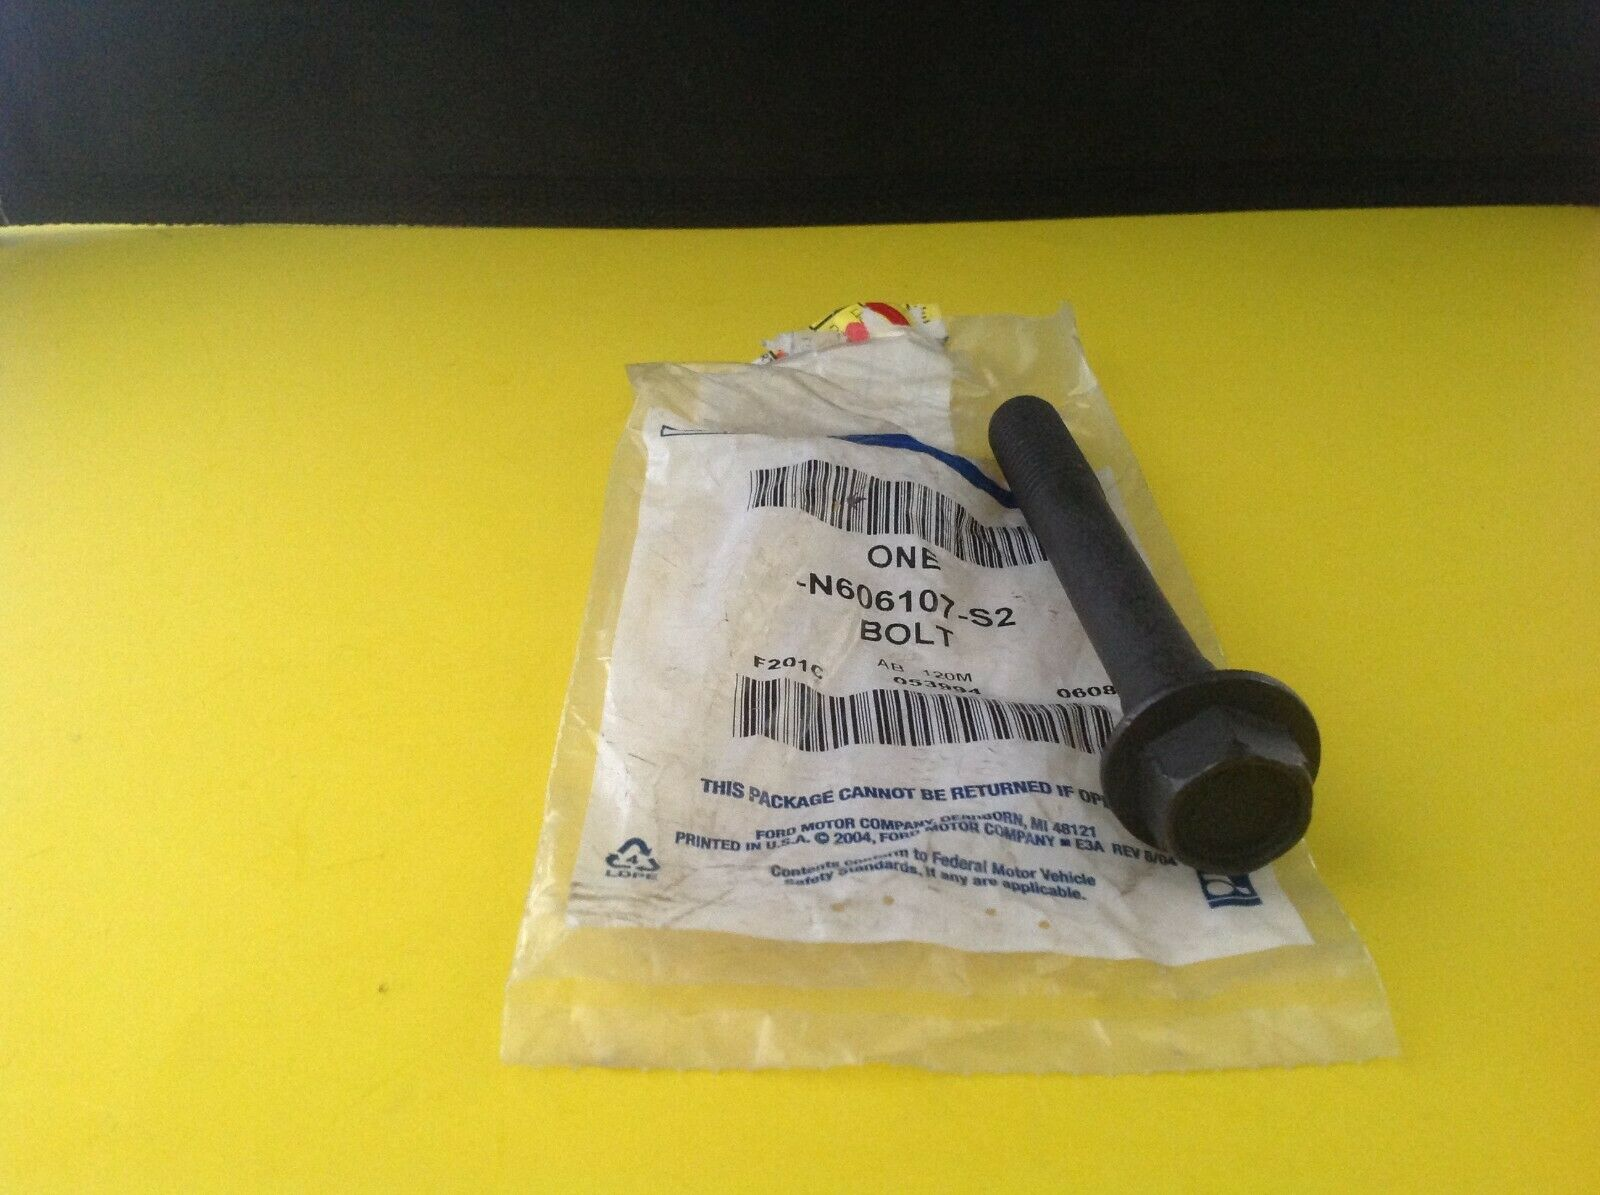 Brand New OEM BOLT-M14 X 2 X 110 HEX FLG HD N606107-S2 |M  N6061|